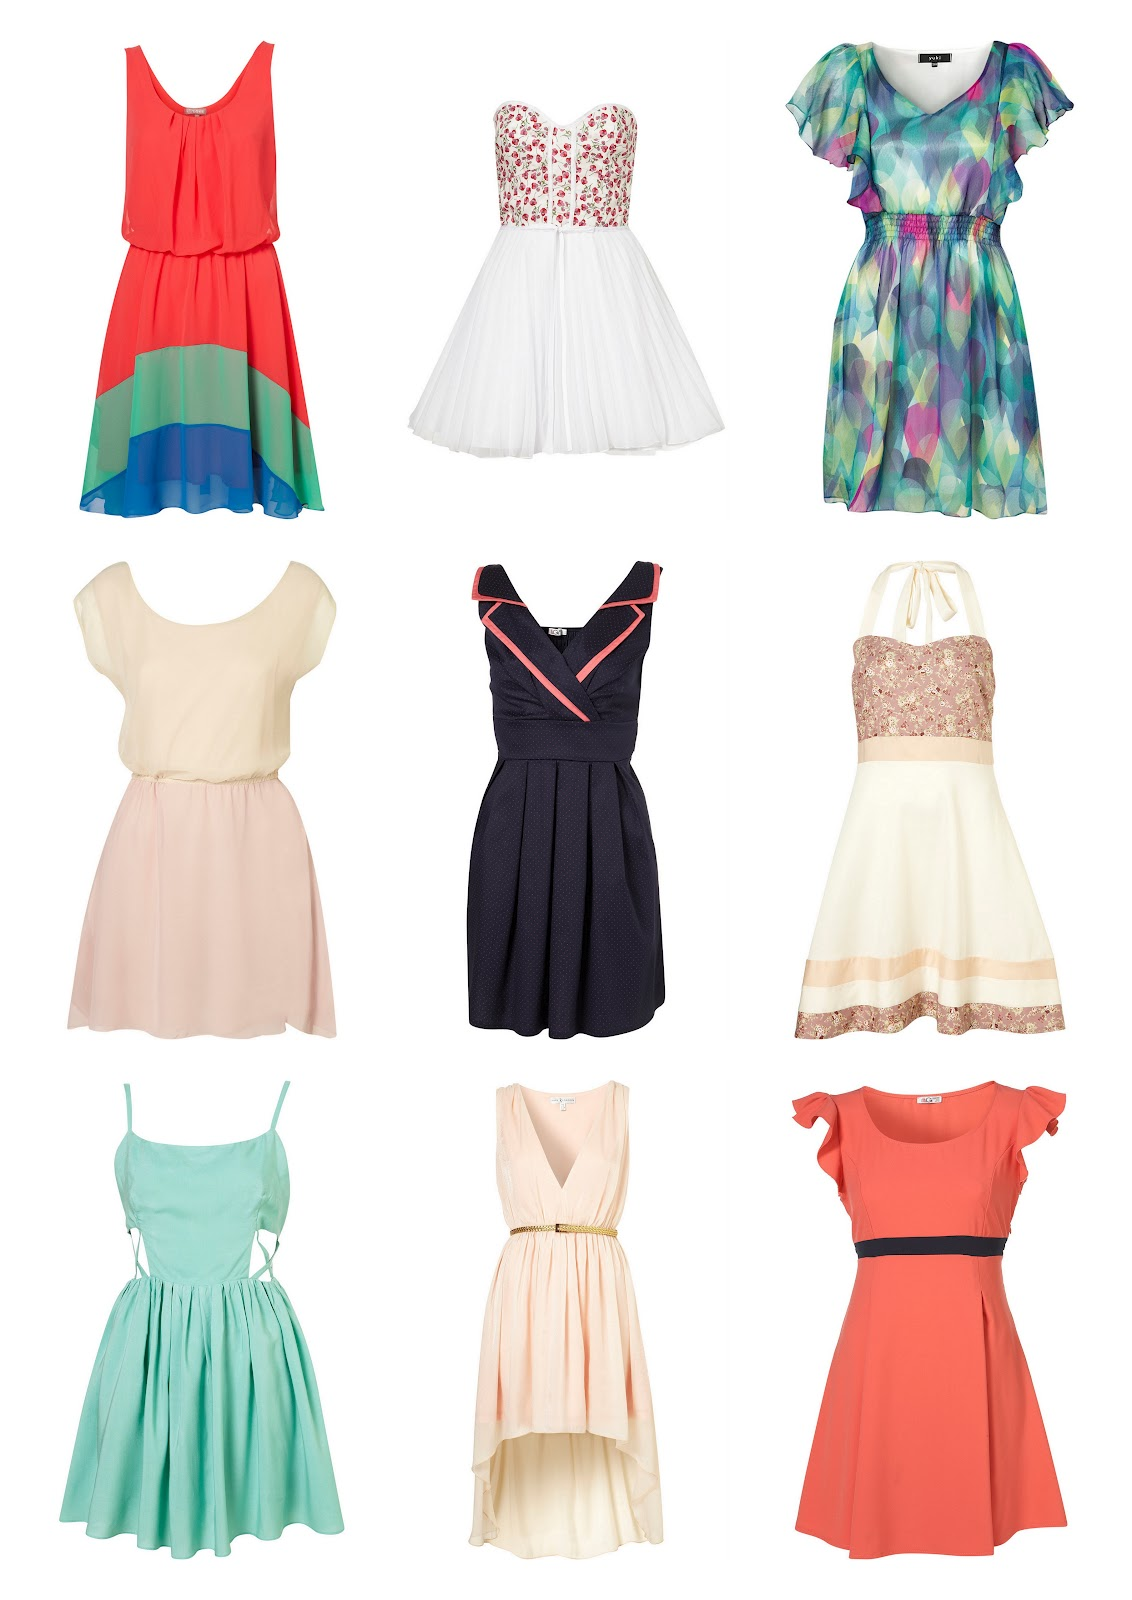 Paint Me Chic: Adorable Summer Dresses from TopShop